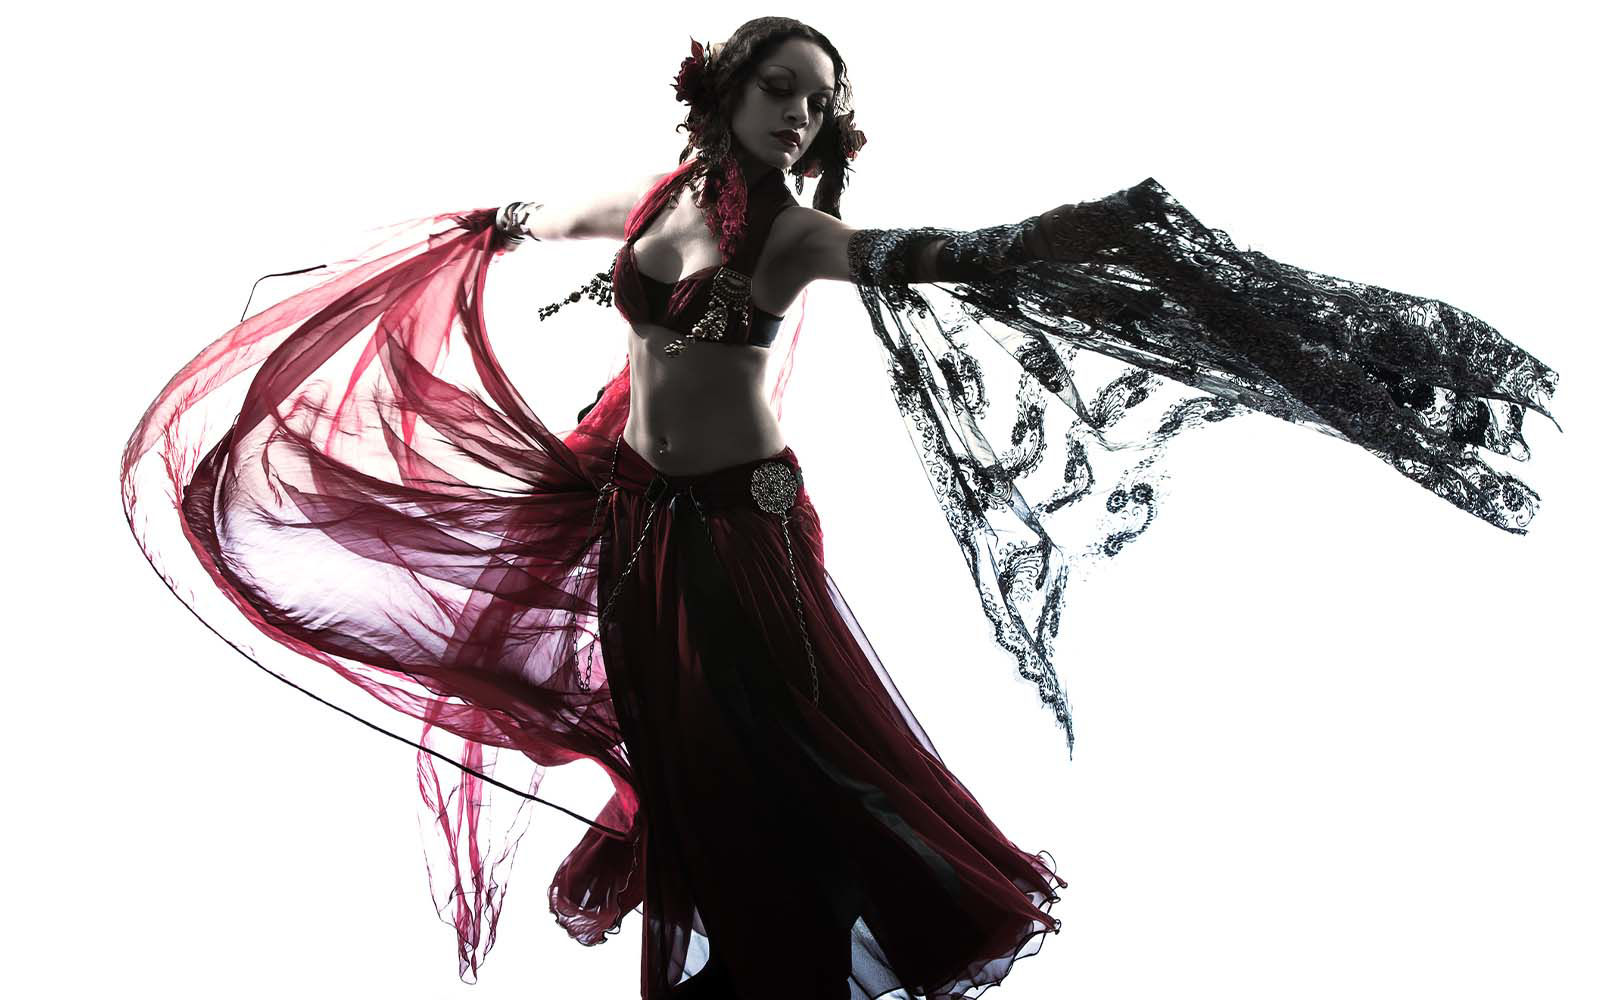 woman in traditional belly dance garb dancing